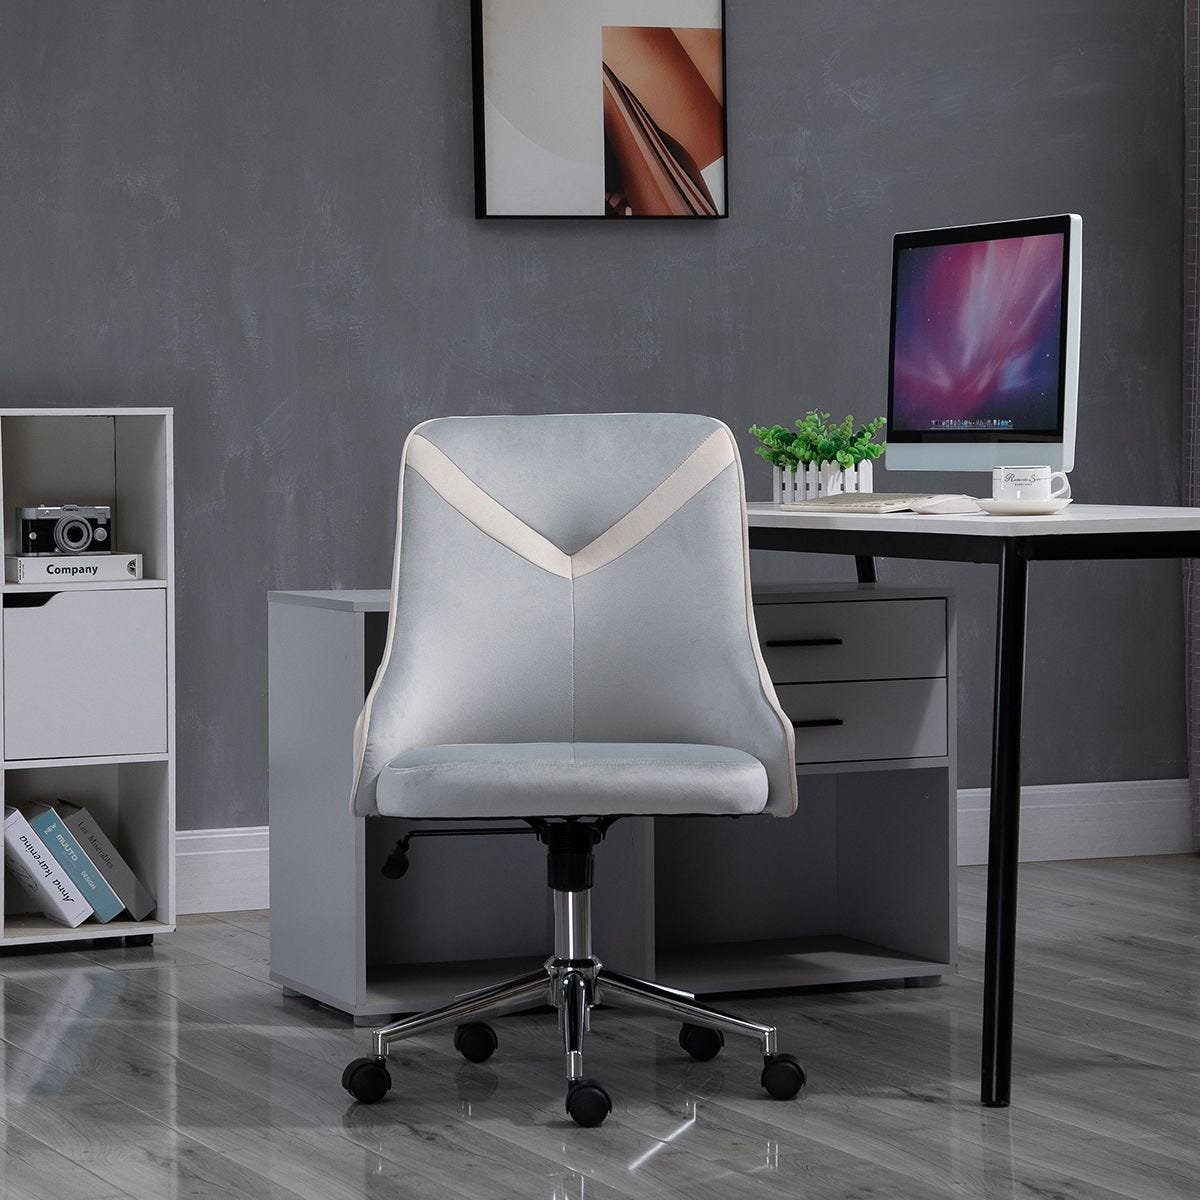 Office Chair Velvet Armless Rocker With Wheels Grey And Beige